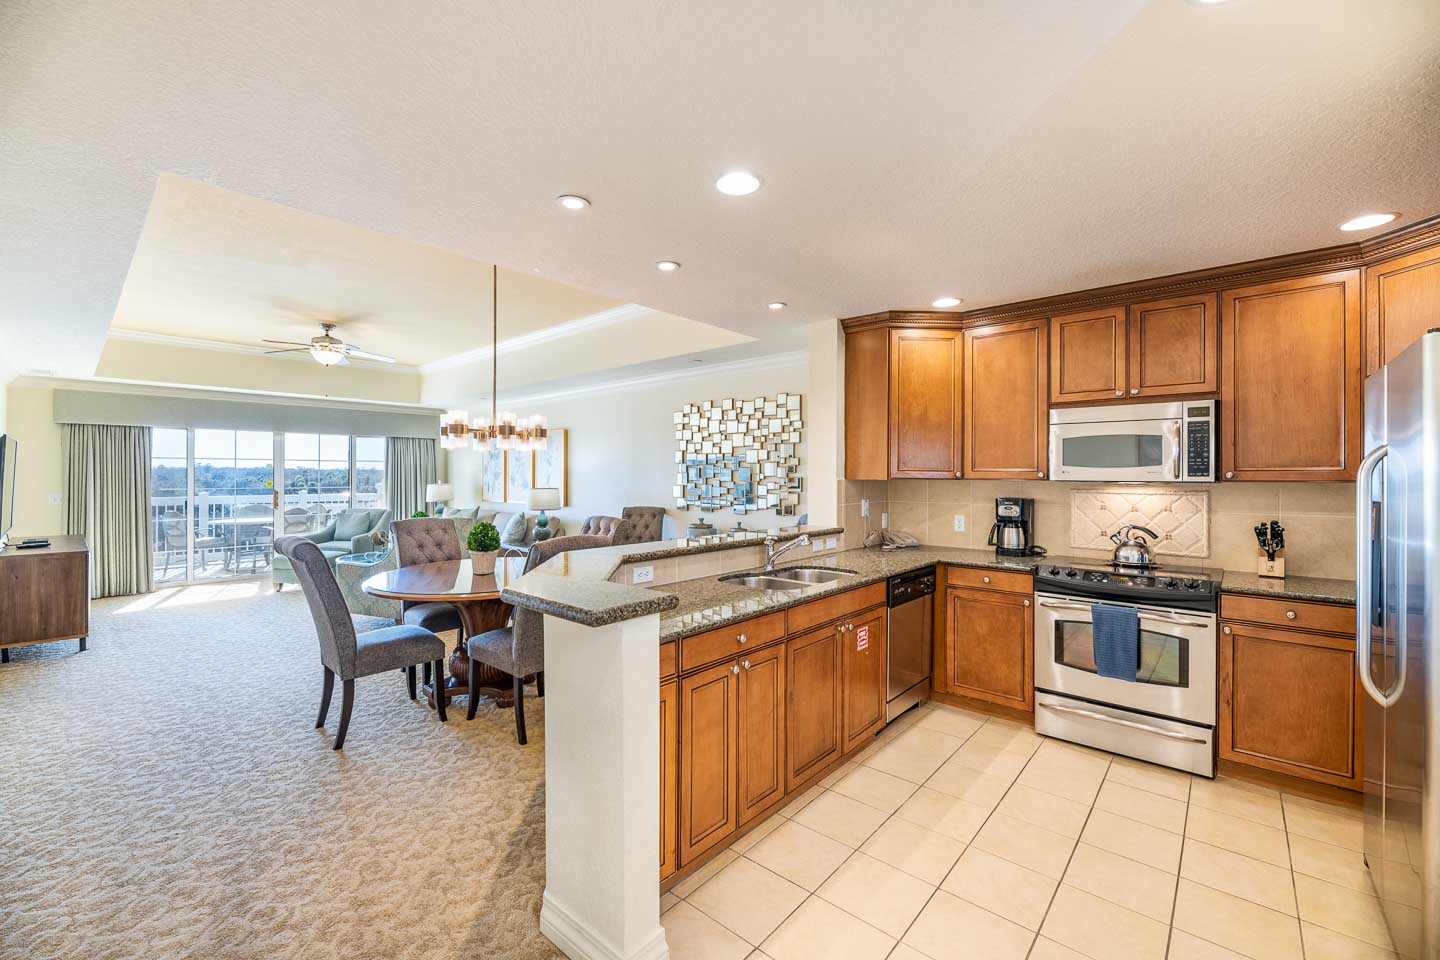 The Welcoming Golf Condo-195349